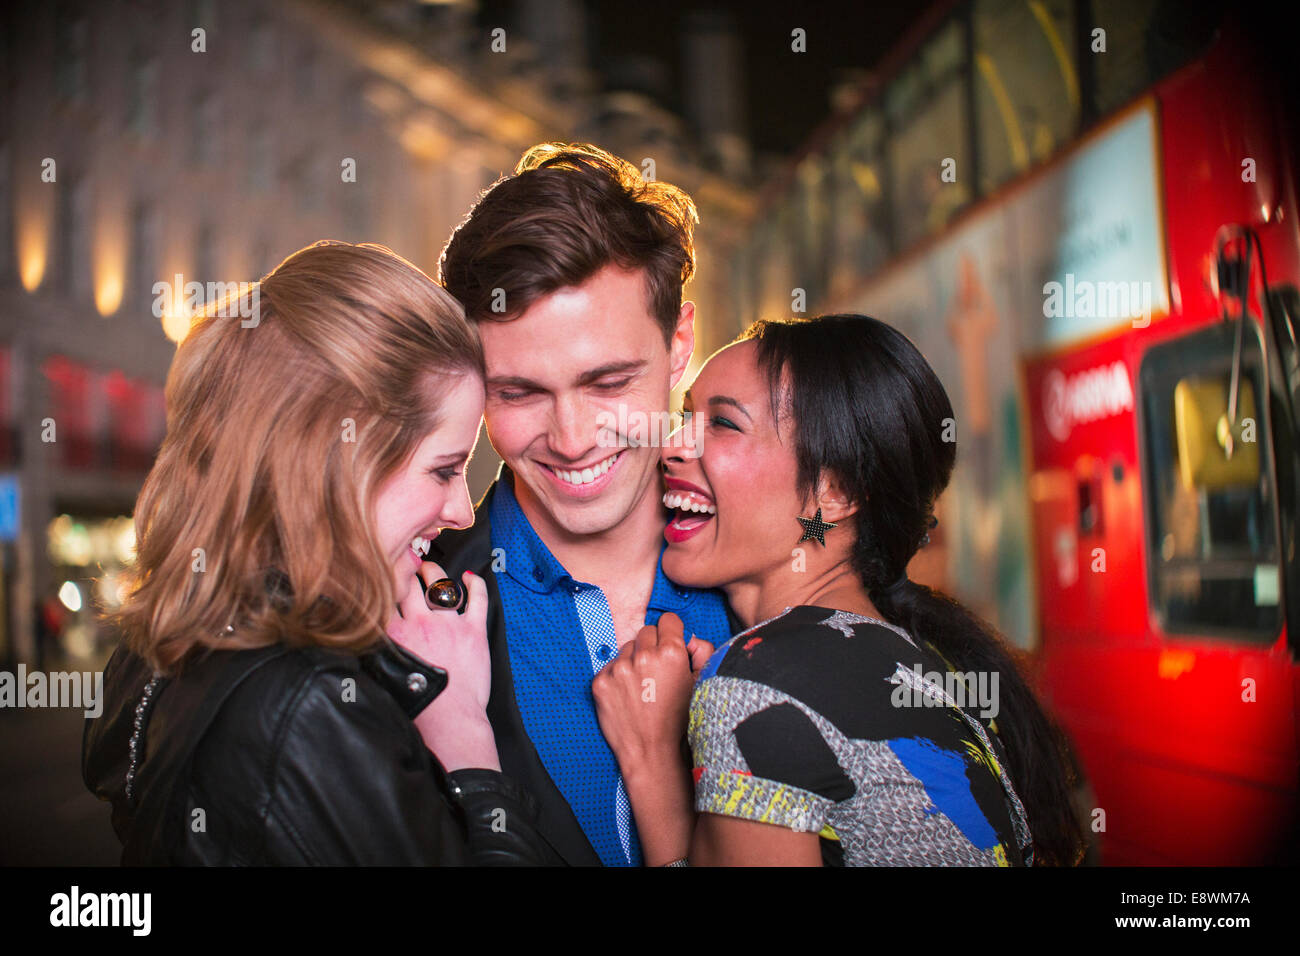 Friends hugging on city street at night - Stock Image